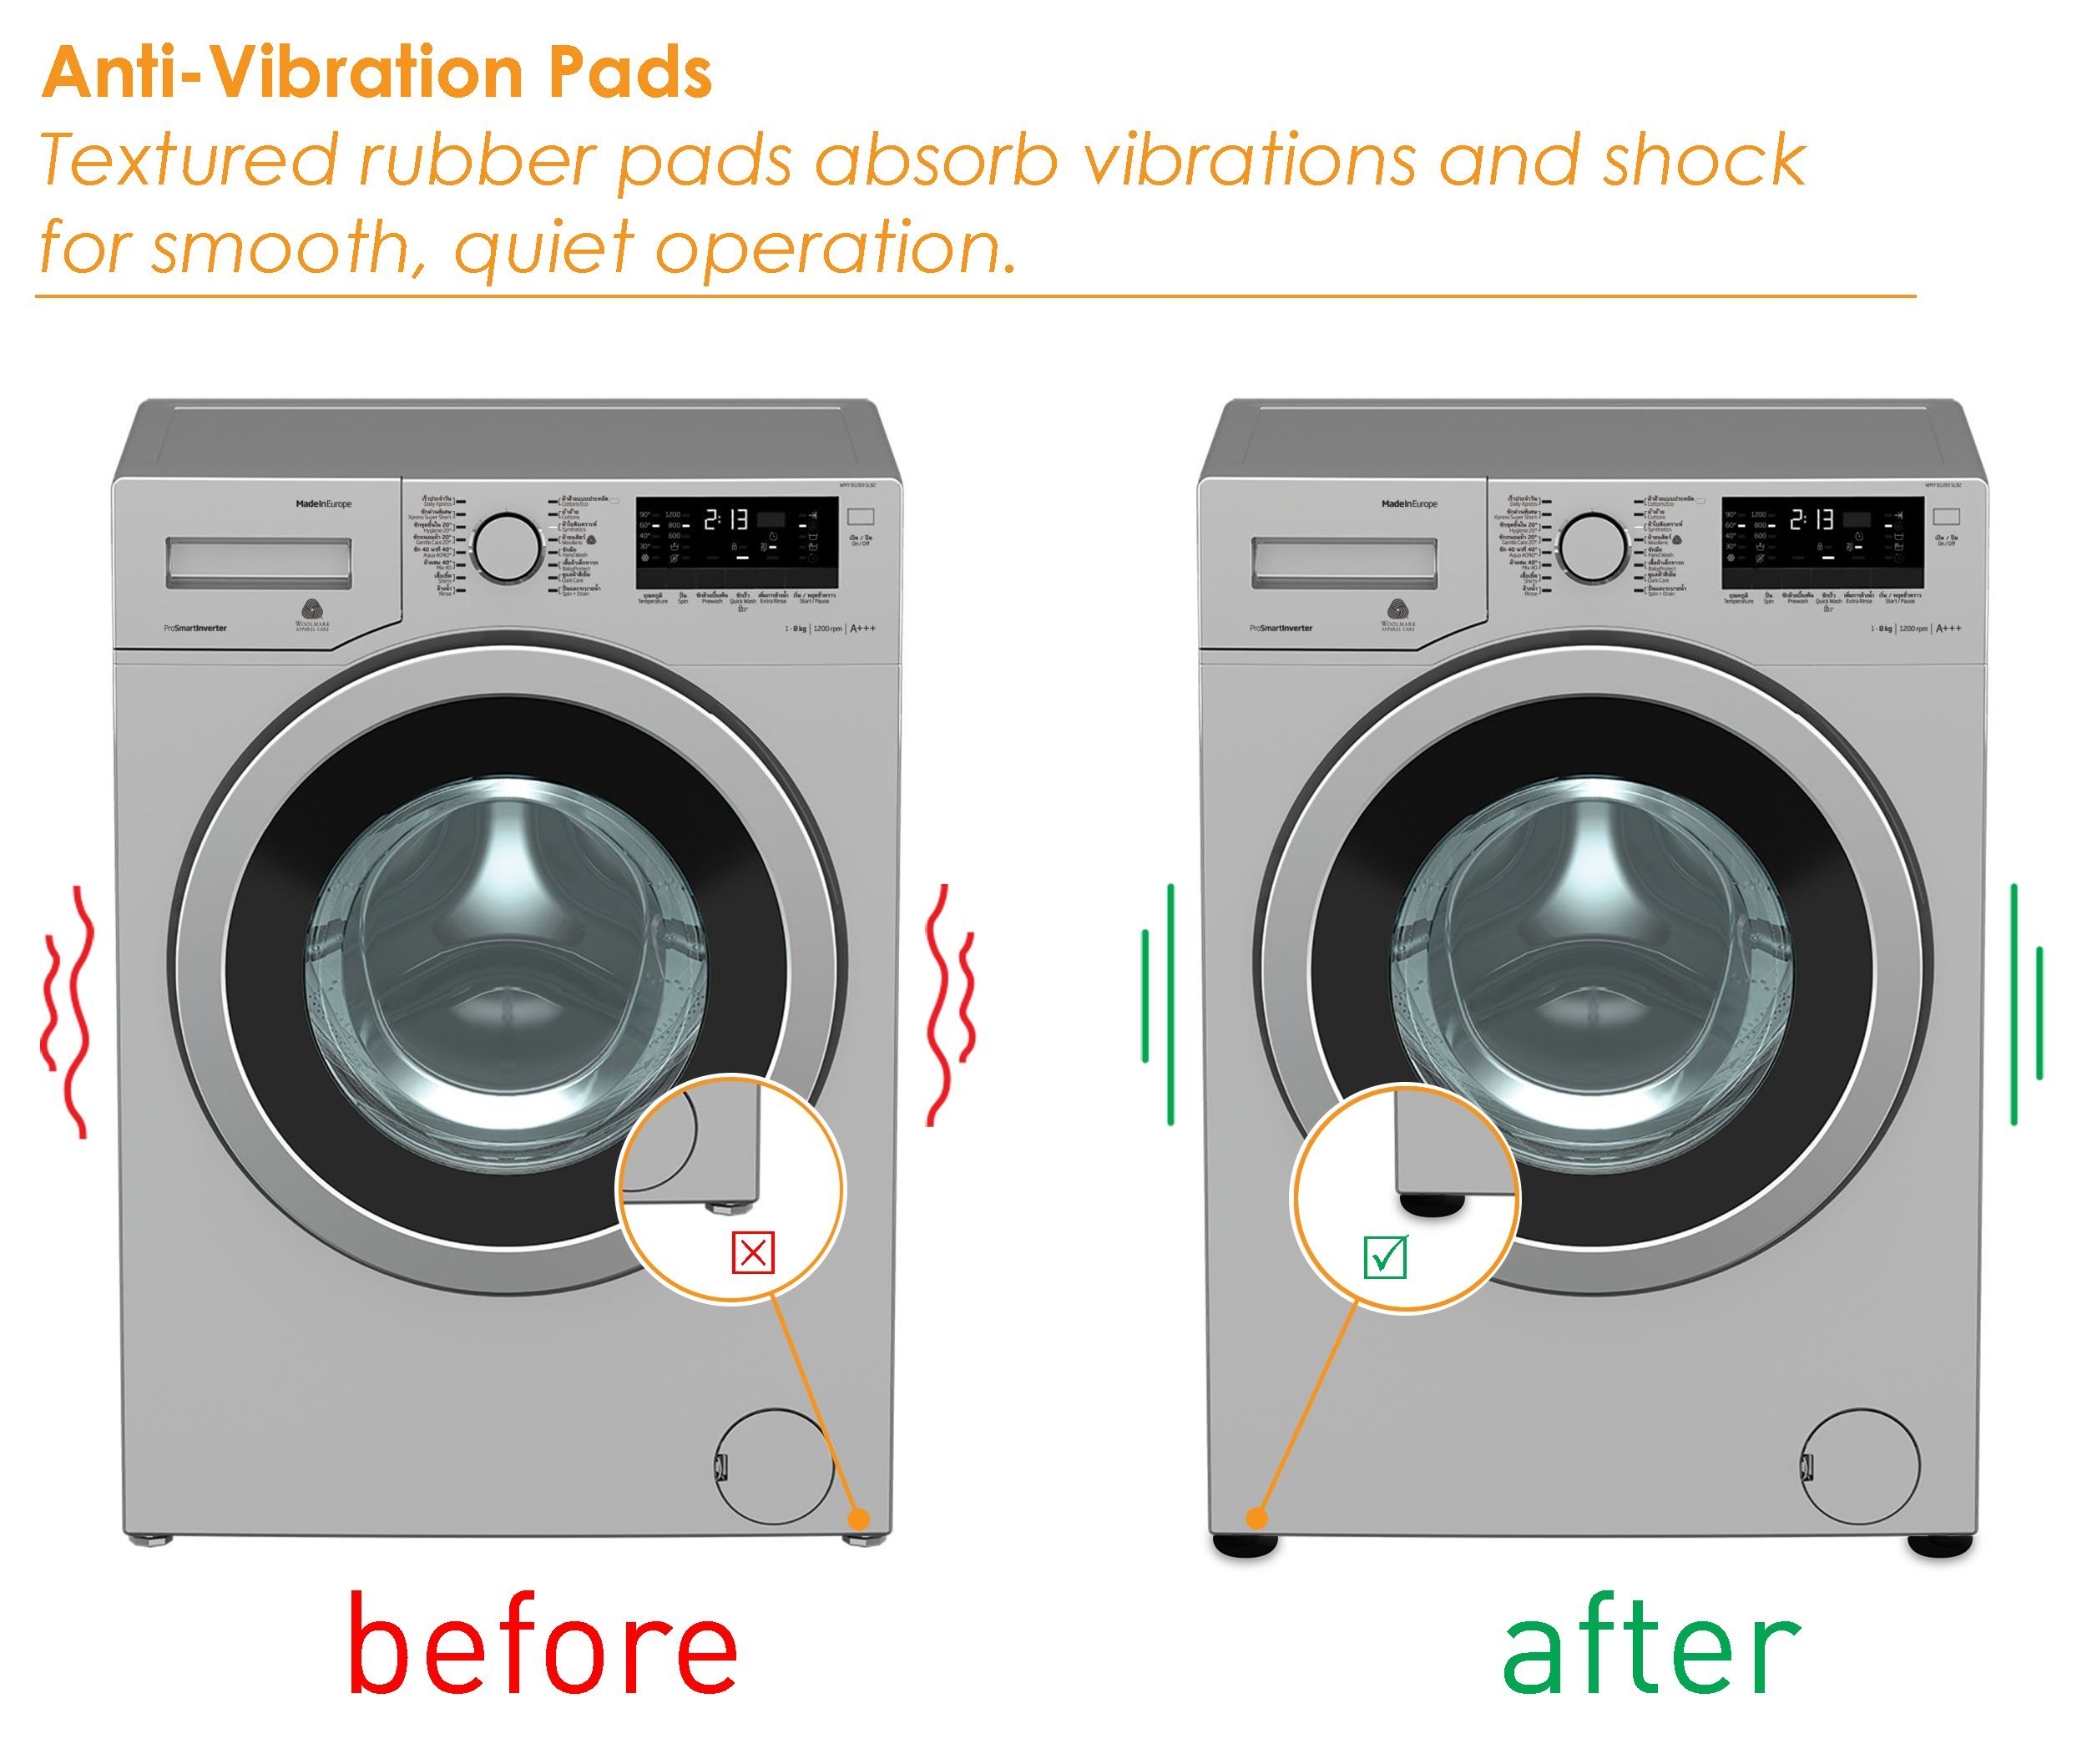 Anti-Vibration Pads For Washing Machines and Clothes Dryers - Anti-Walk Washer Vibration Pads - Noise Reducing, Shock Absorbing, Vibration Isolating Pads - No Shake Pads by No Shake Pads (Image #5)